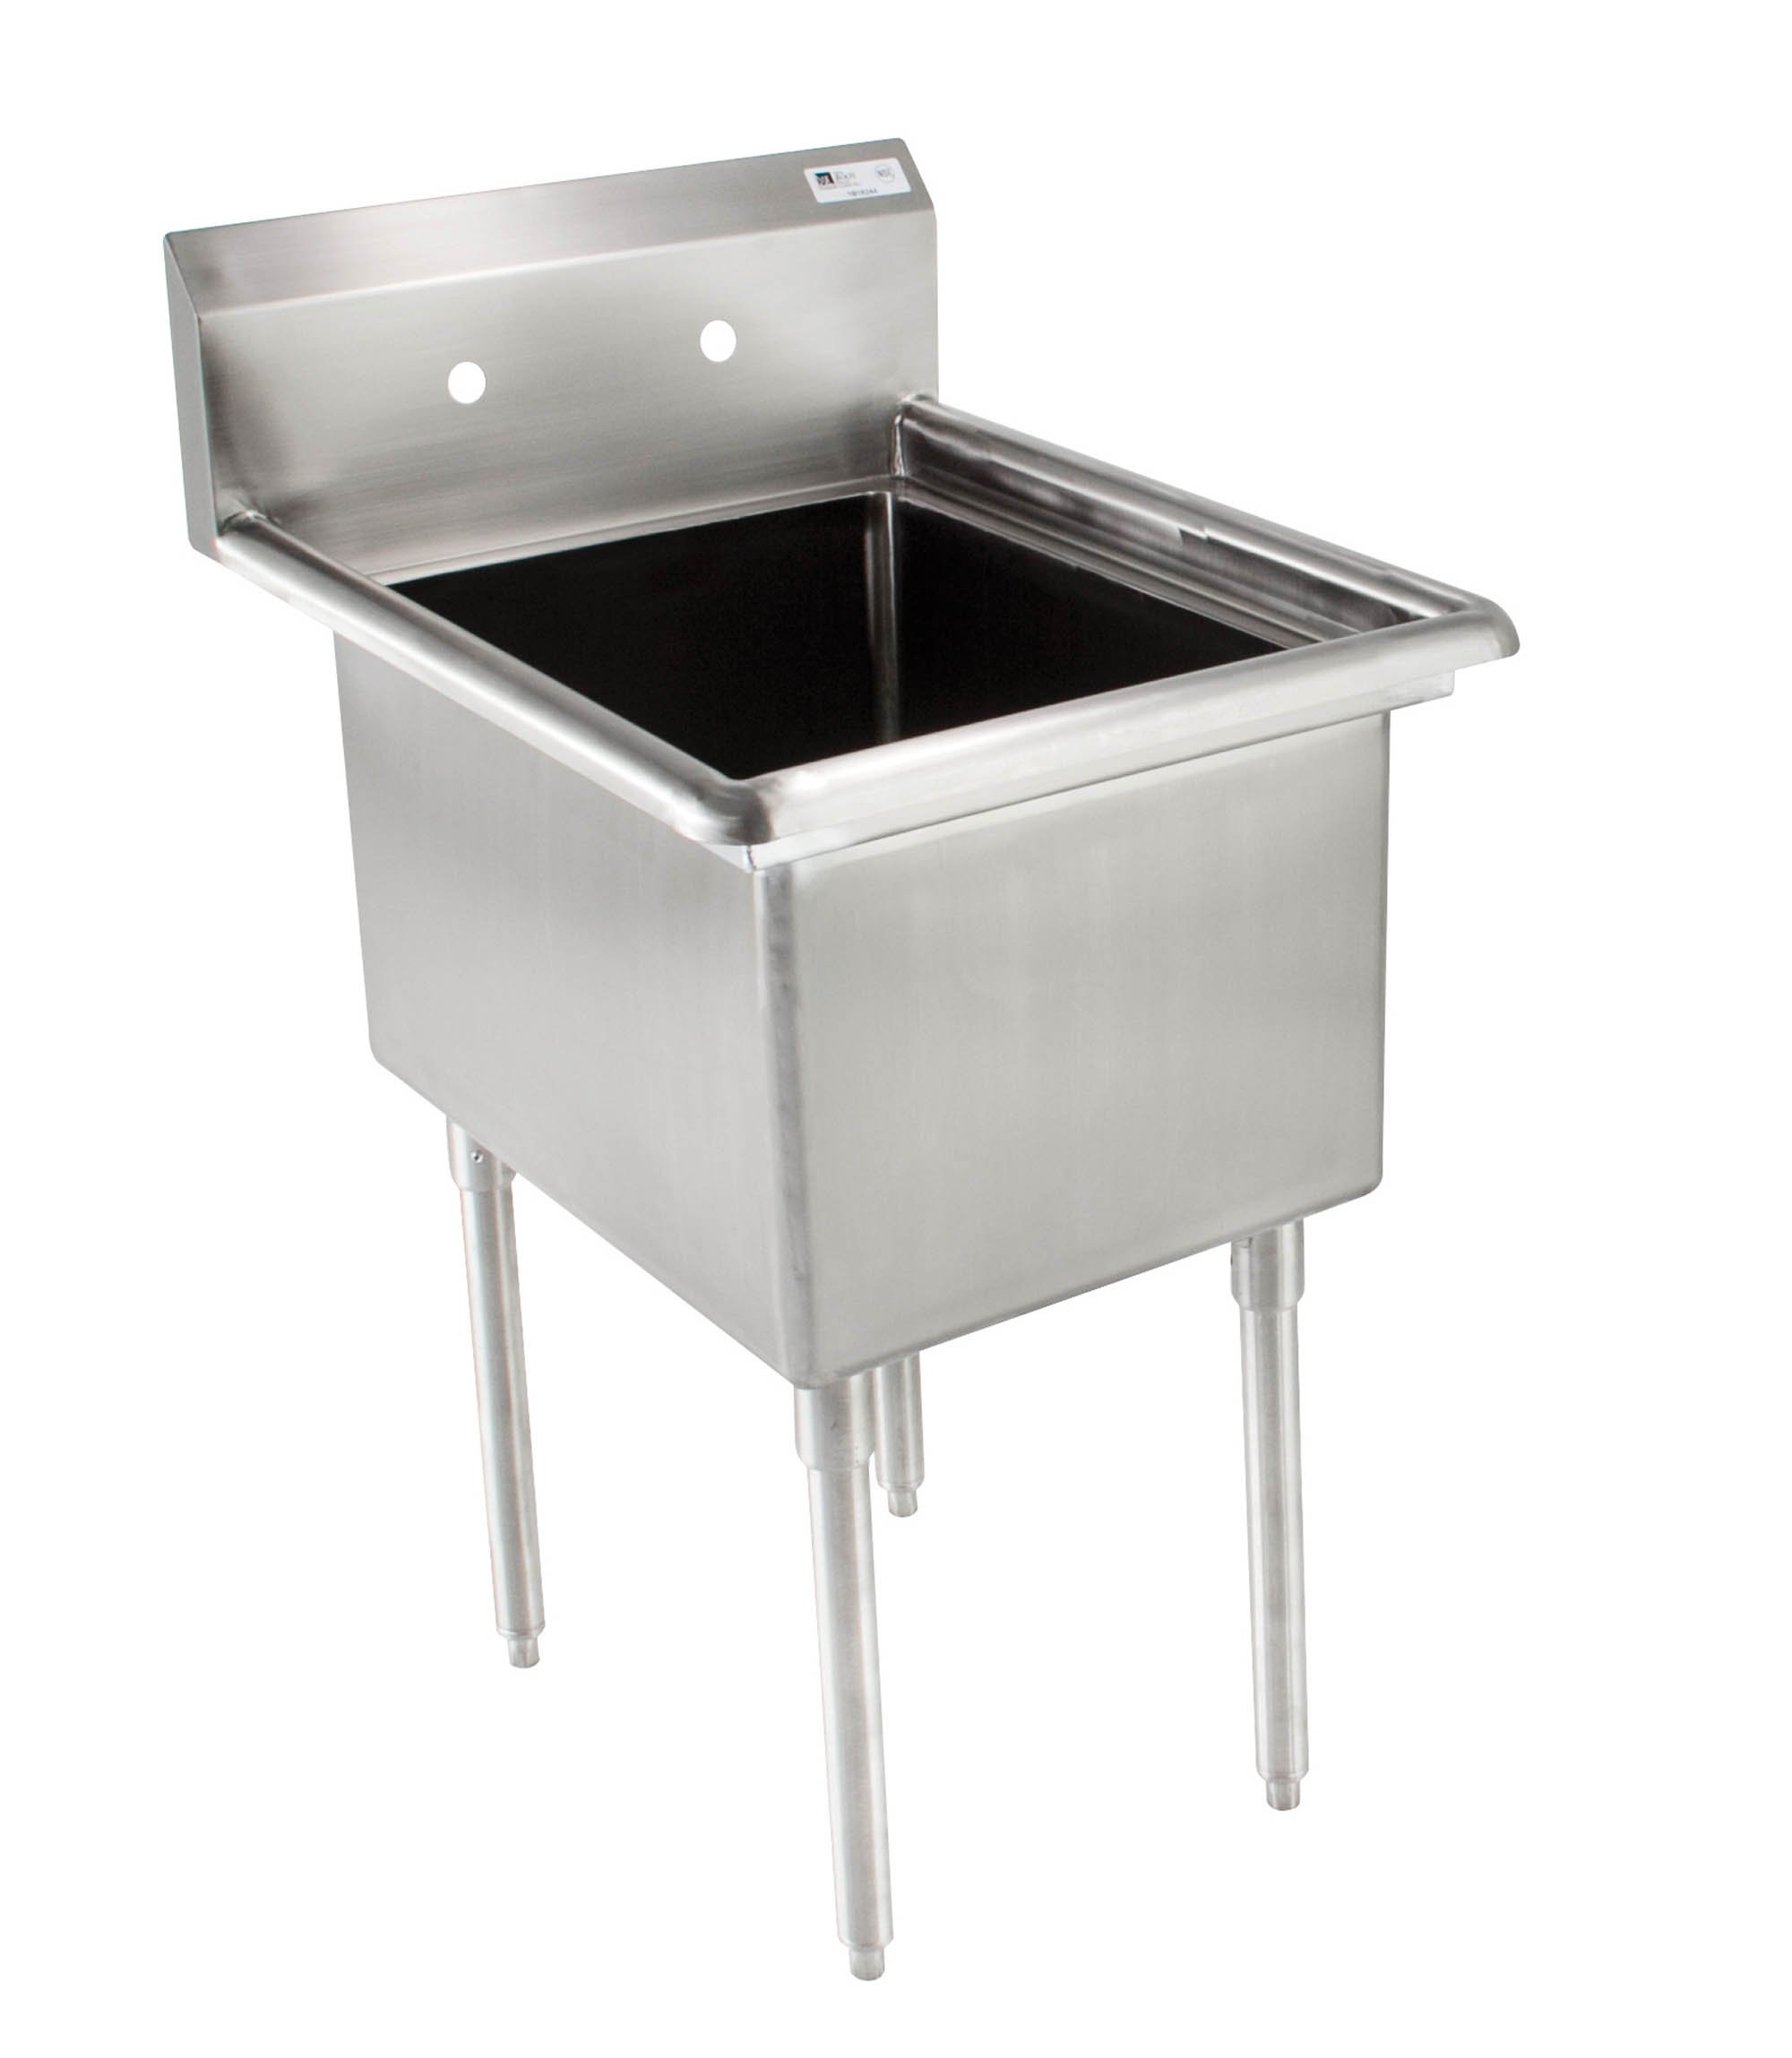 John Boos E Series Stainless Steel Sink, 12'' Deep Bowl, 1 Compartment, 23'' Length x 23-1/2'' Width